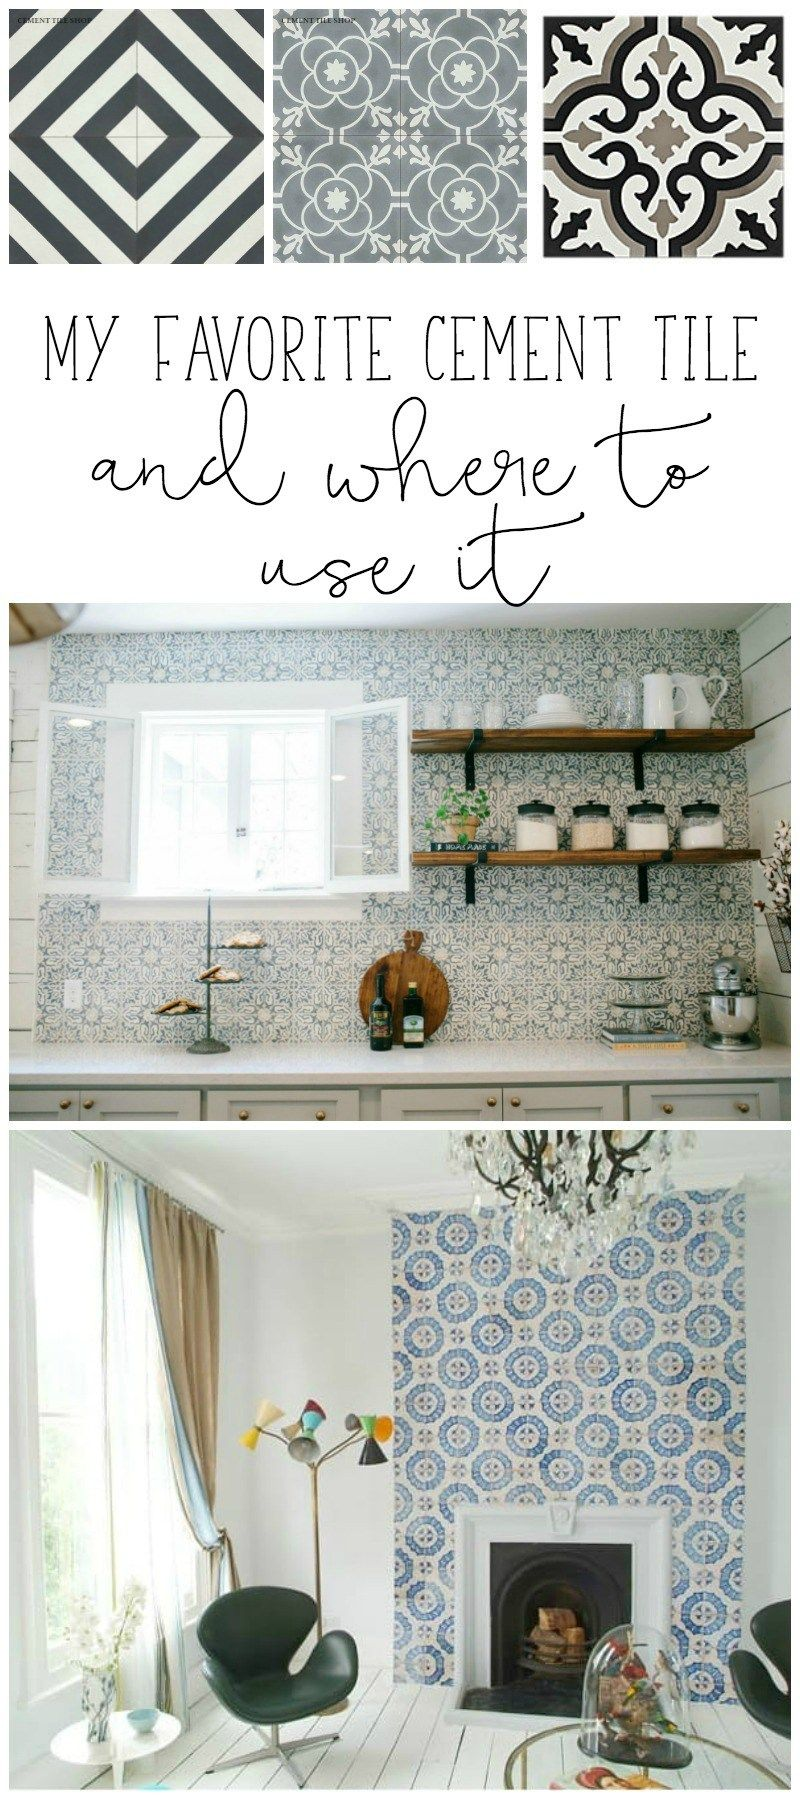 My Favorite Cement Tile and Where to Use it | Tile stores, Cement ...